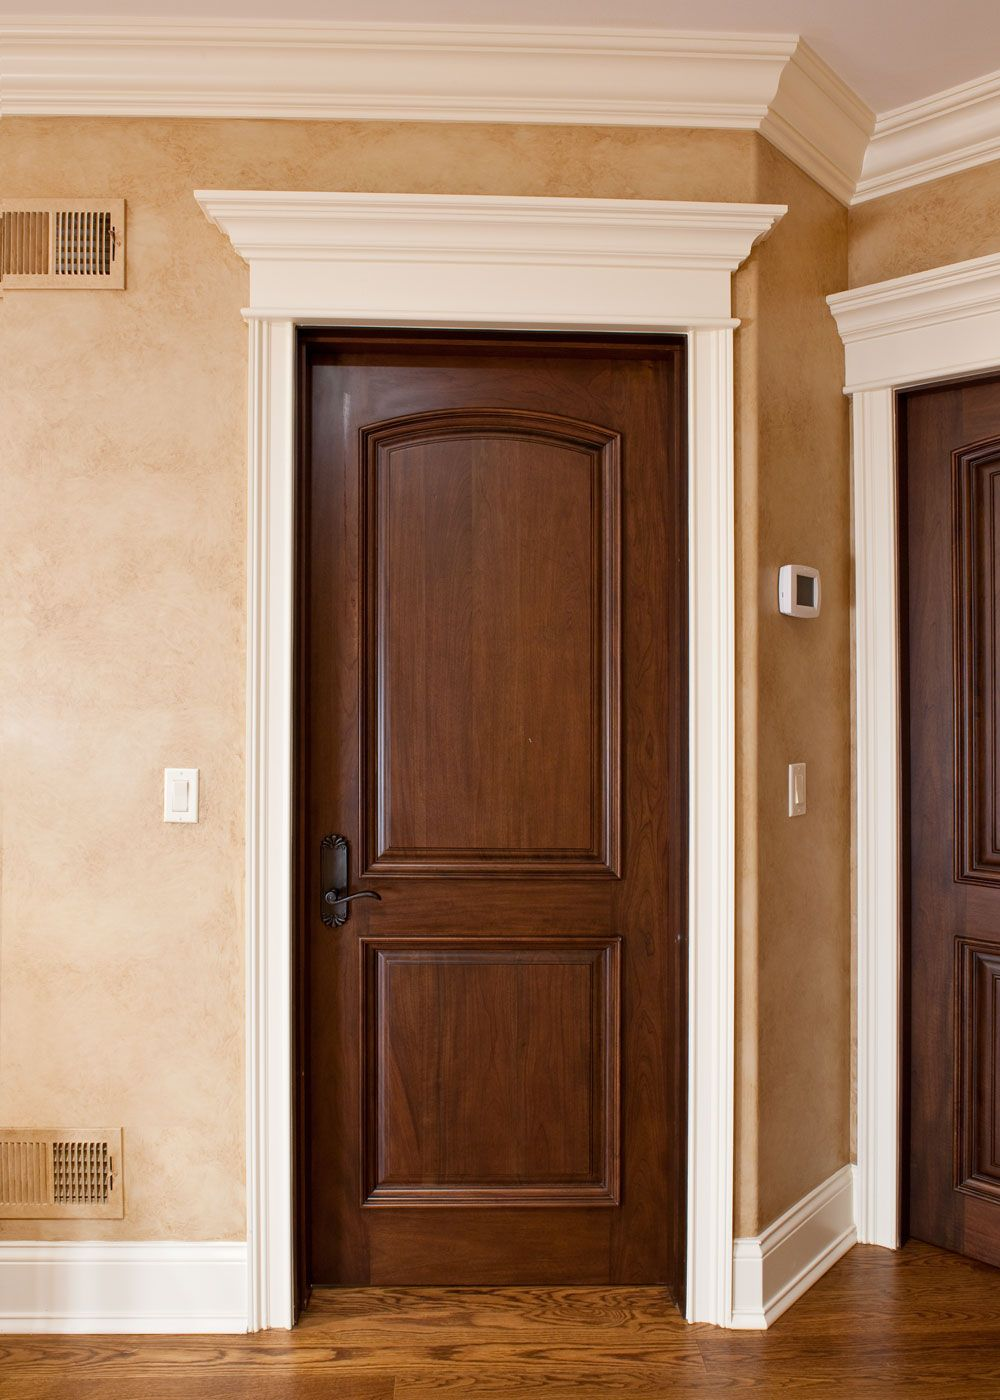 Interior Door Custom   Single   Solid Wood With Walnut Finish, Classic,  Model DBI